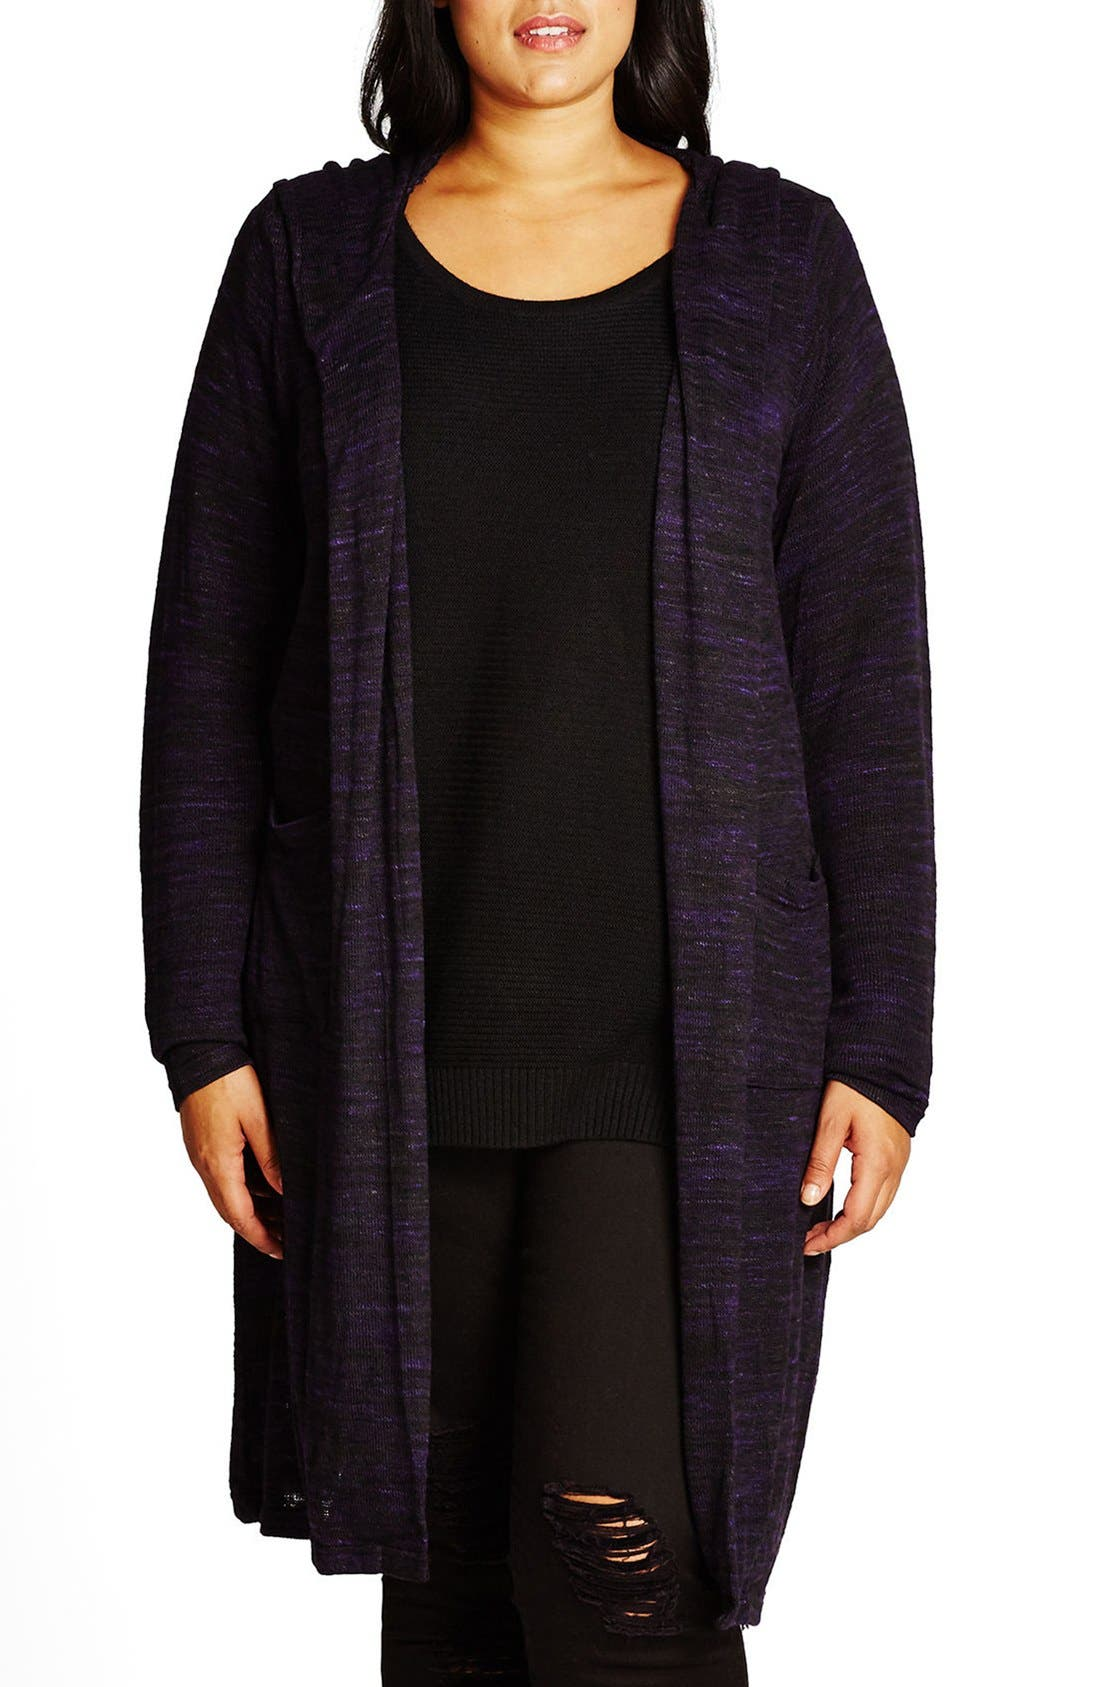 Main Image - City Chic Space Dye Hooded Cardigan (Plus Size)